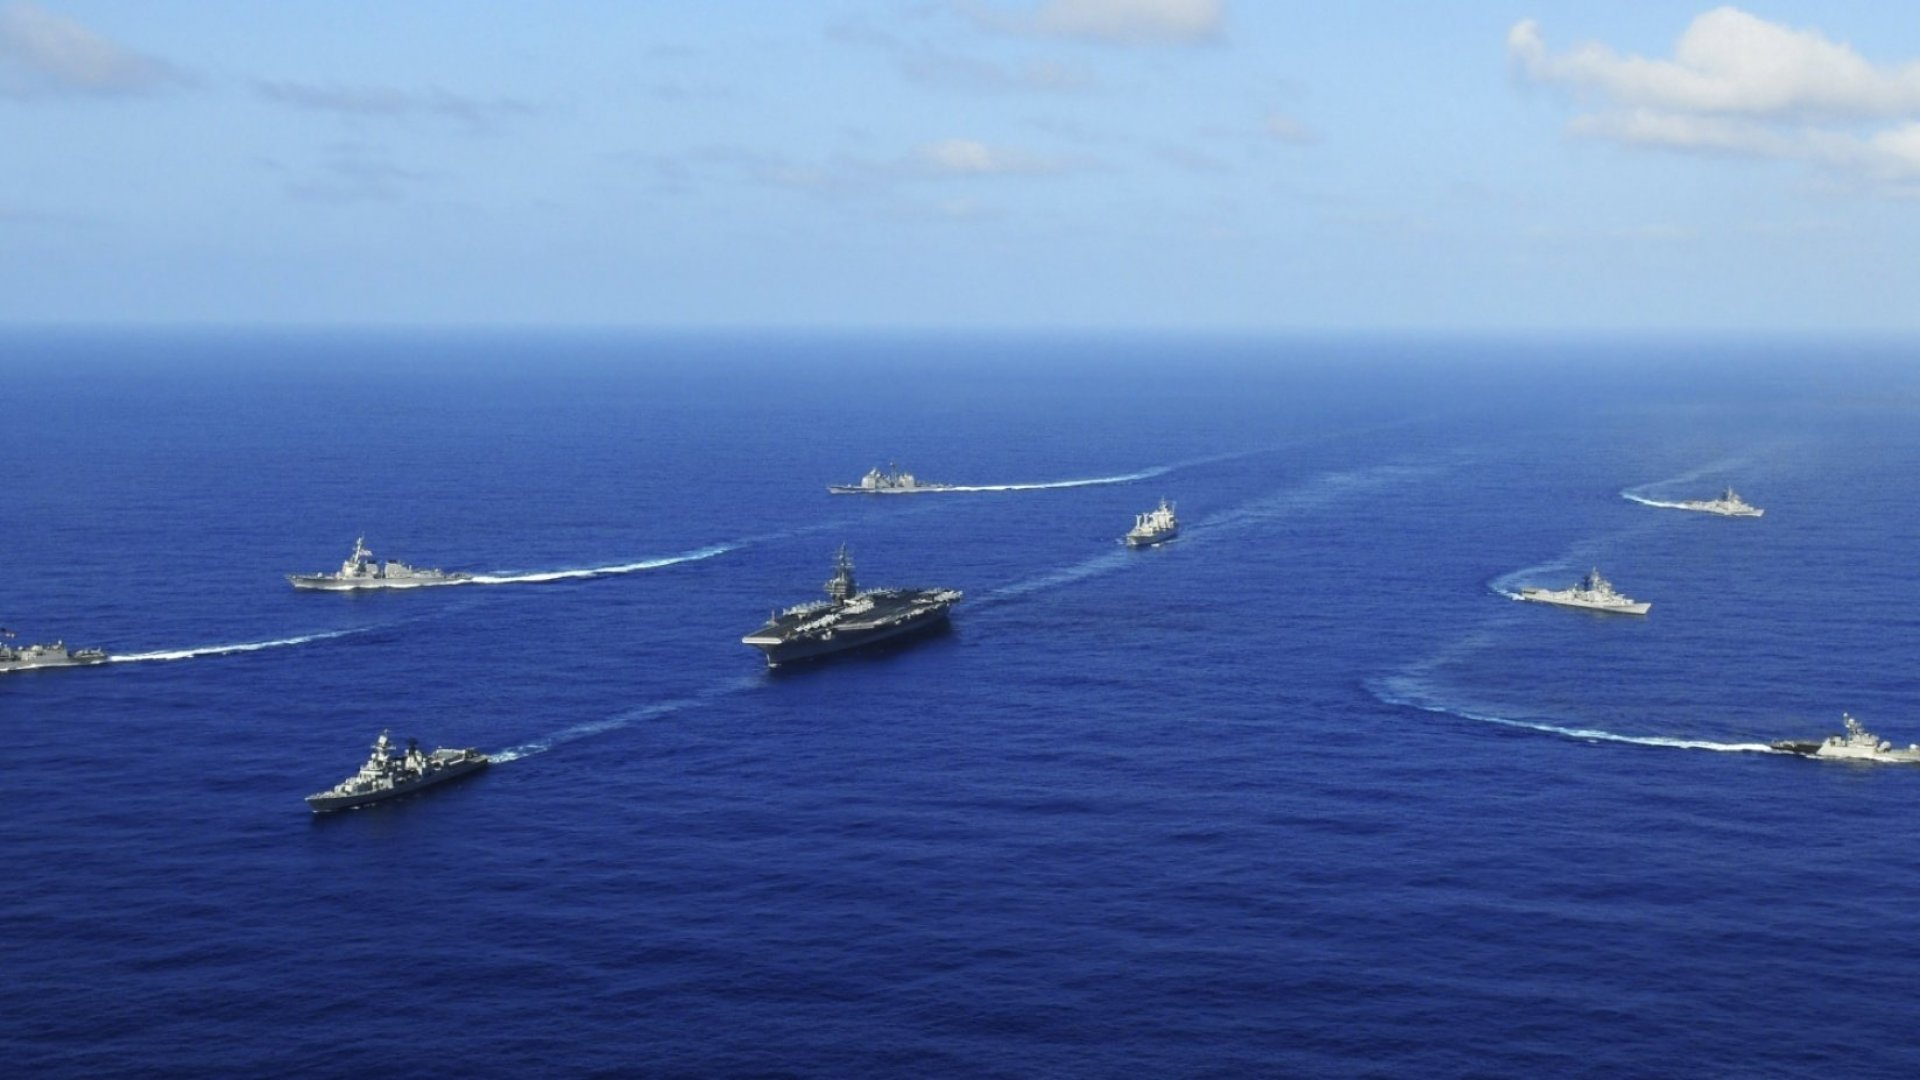 How a Bunch of Misfits Are Teaching the U.S. Navy to Think Creatively